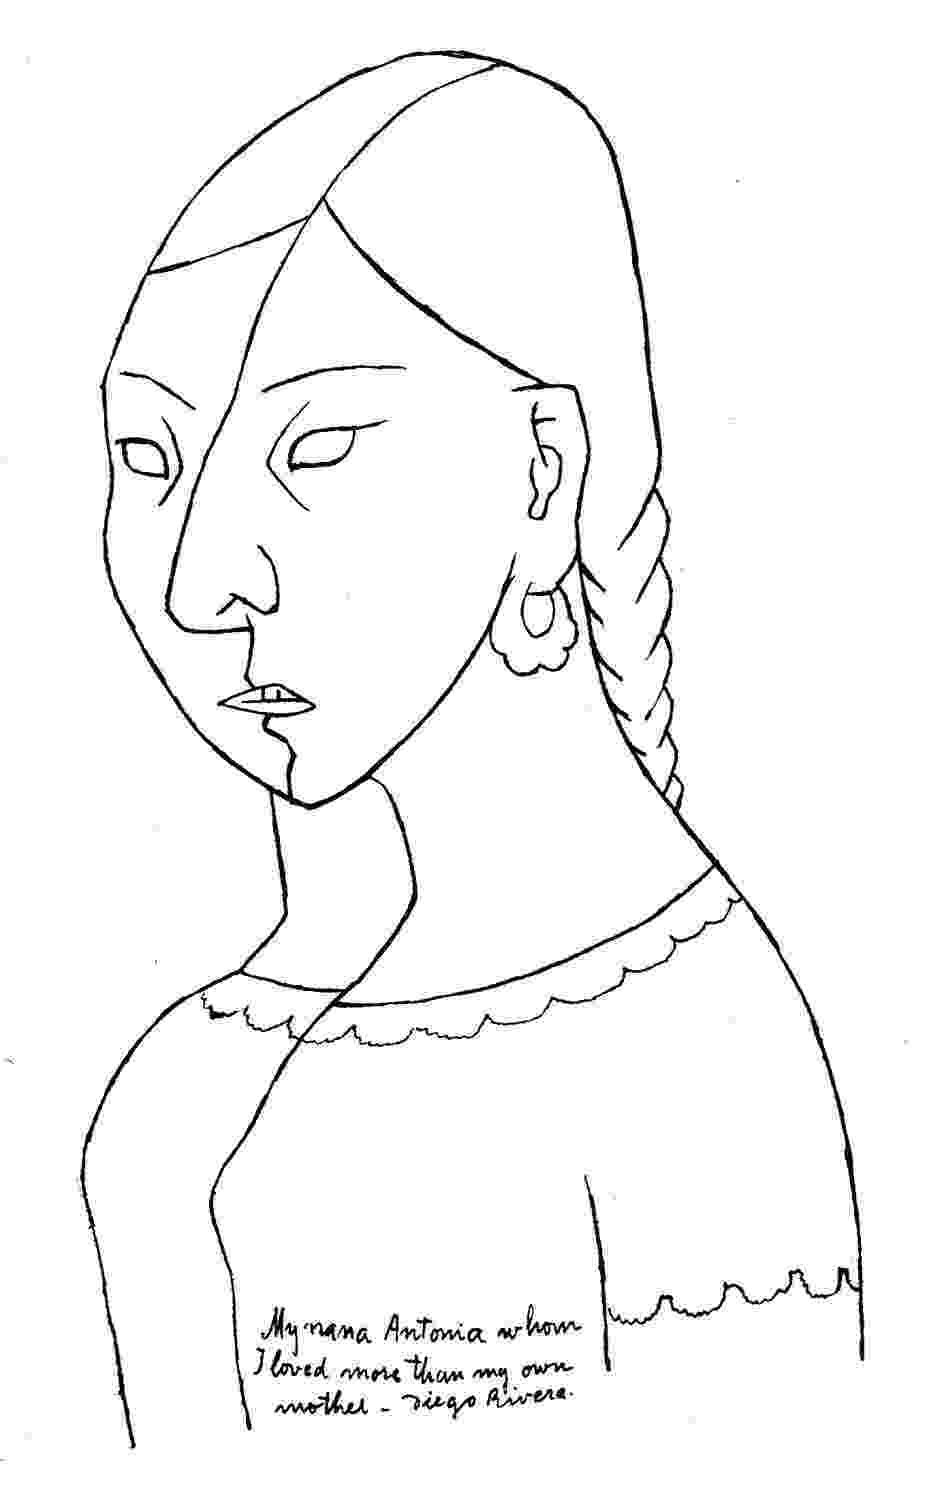 diego rivera coloring pages diego rivera coloring pages coloring home pages coloring diego rivera